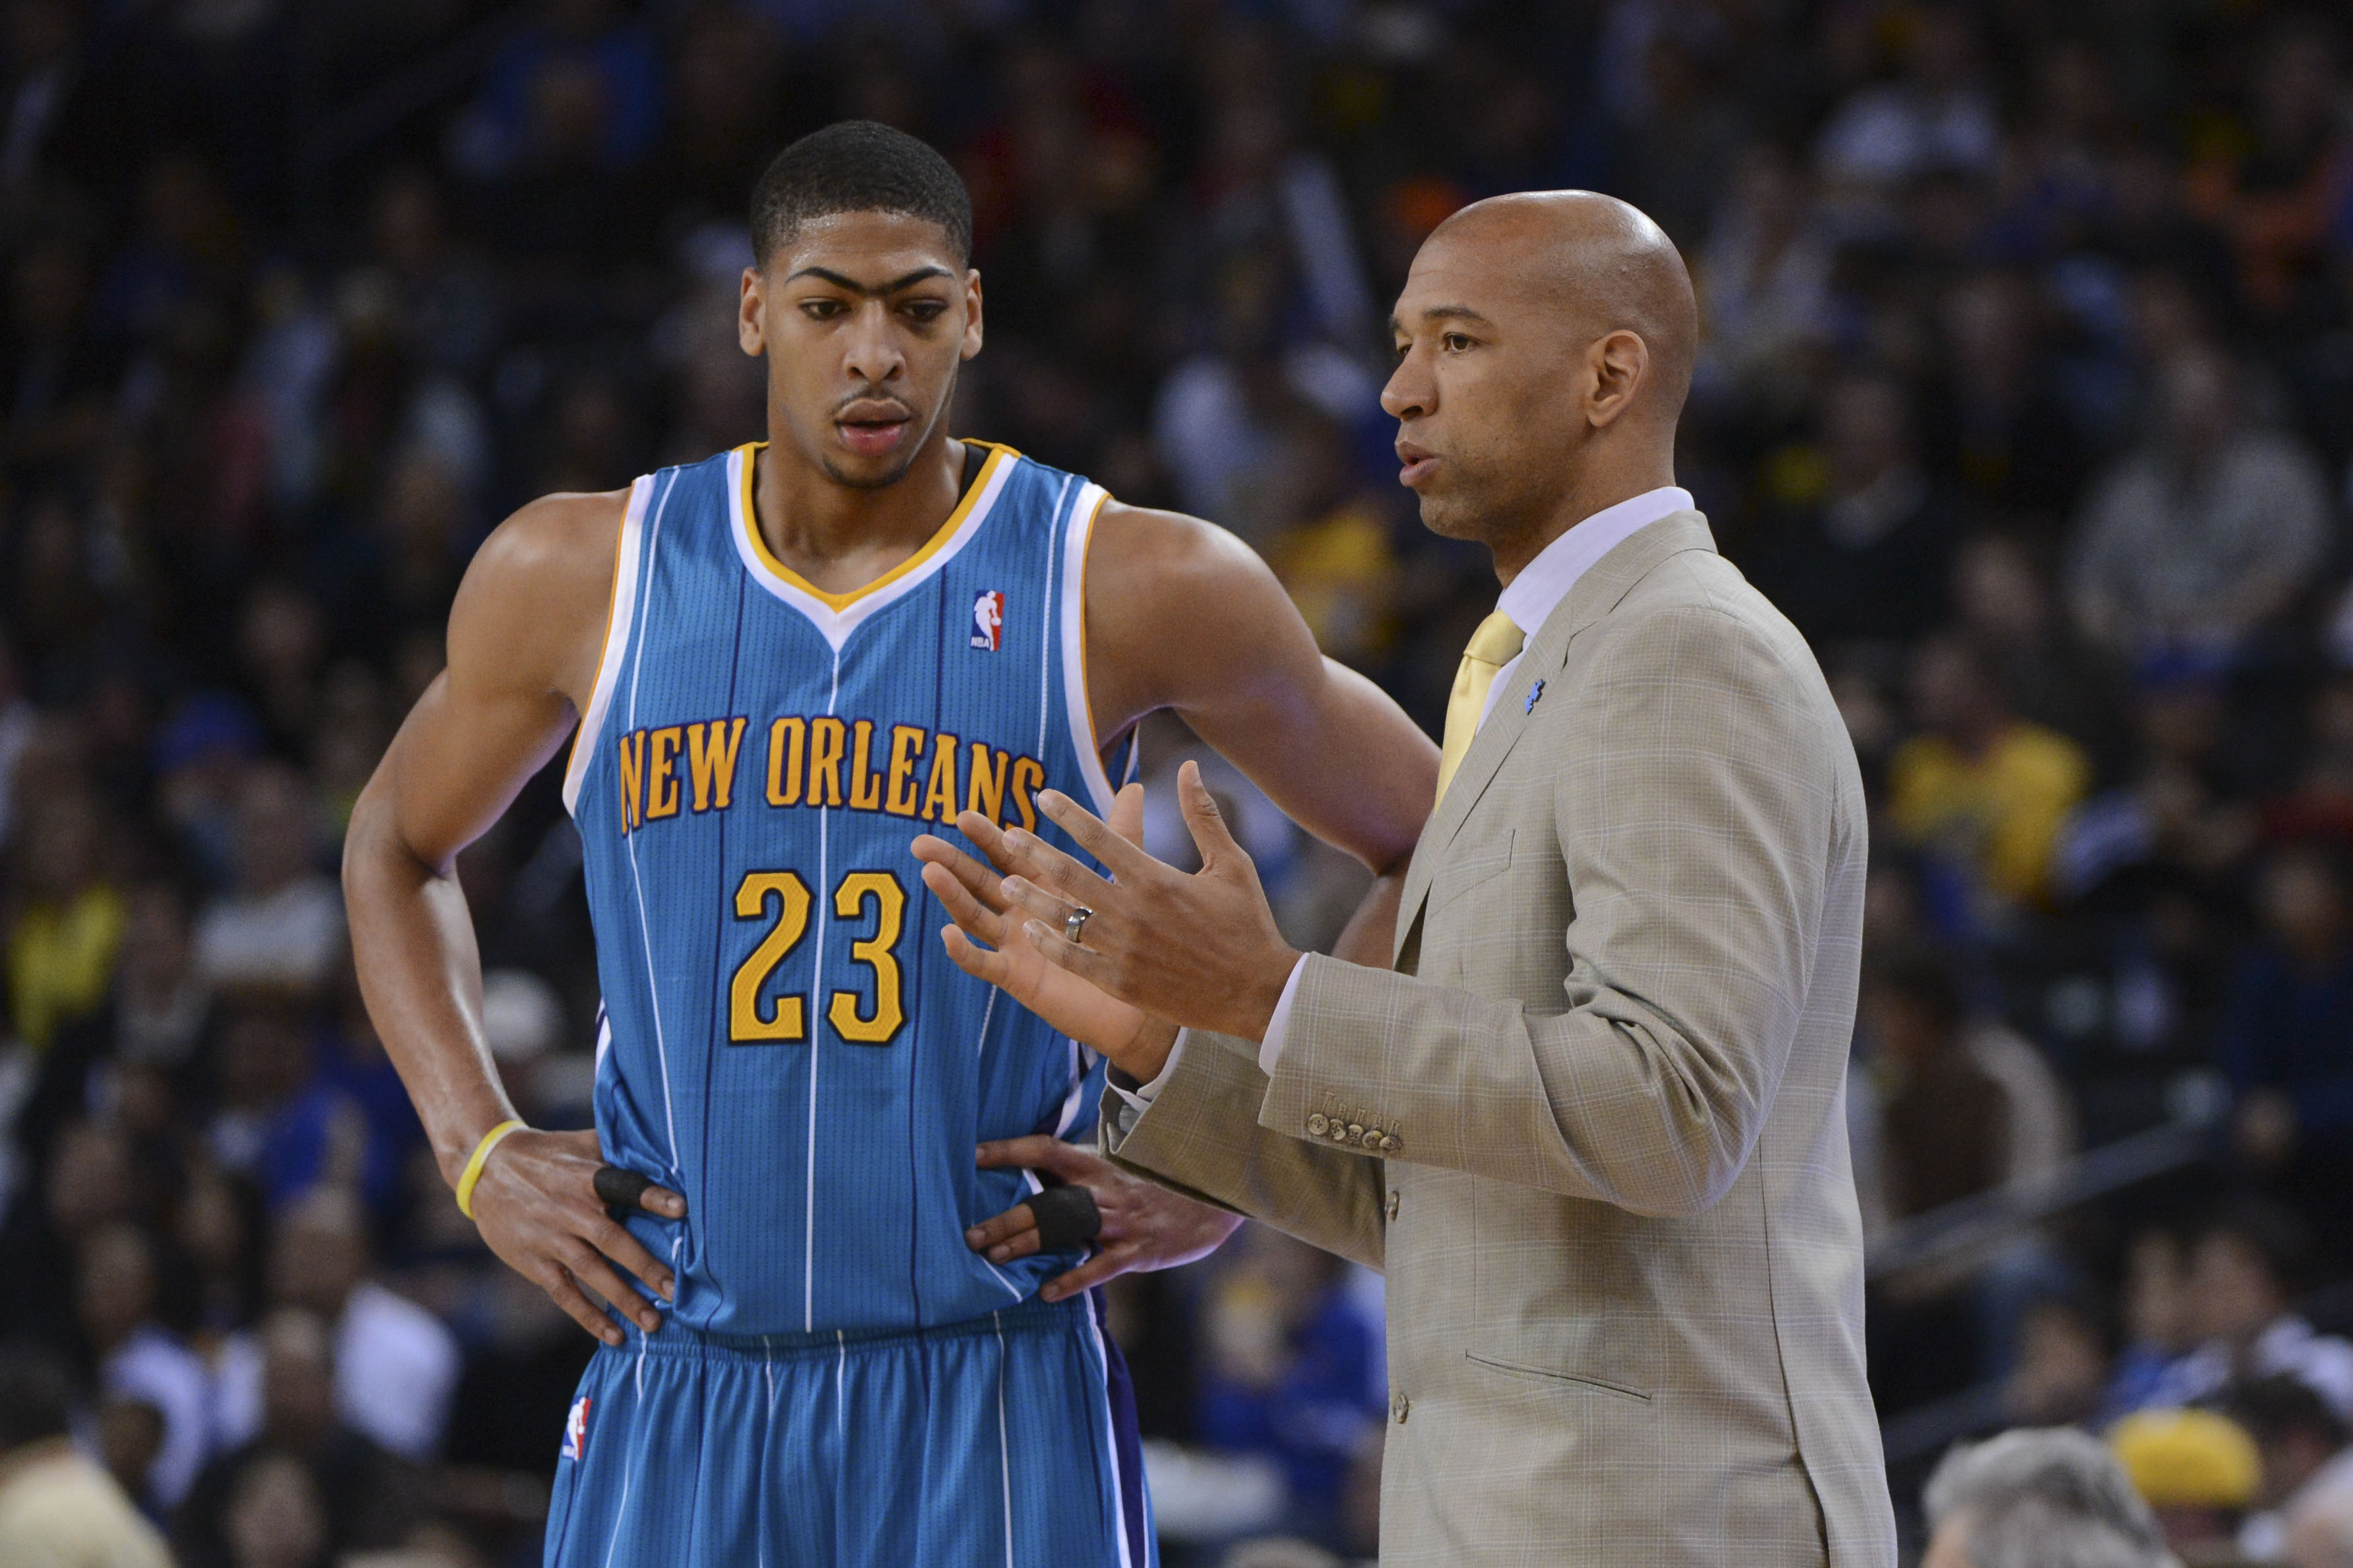 Hornets coach Monty Williams wants to see Anthony Davis put on about seven pounds this offseason. (USA Today Sports)